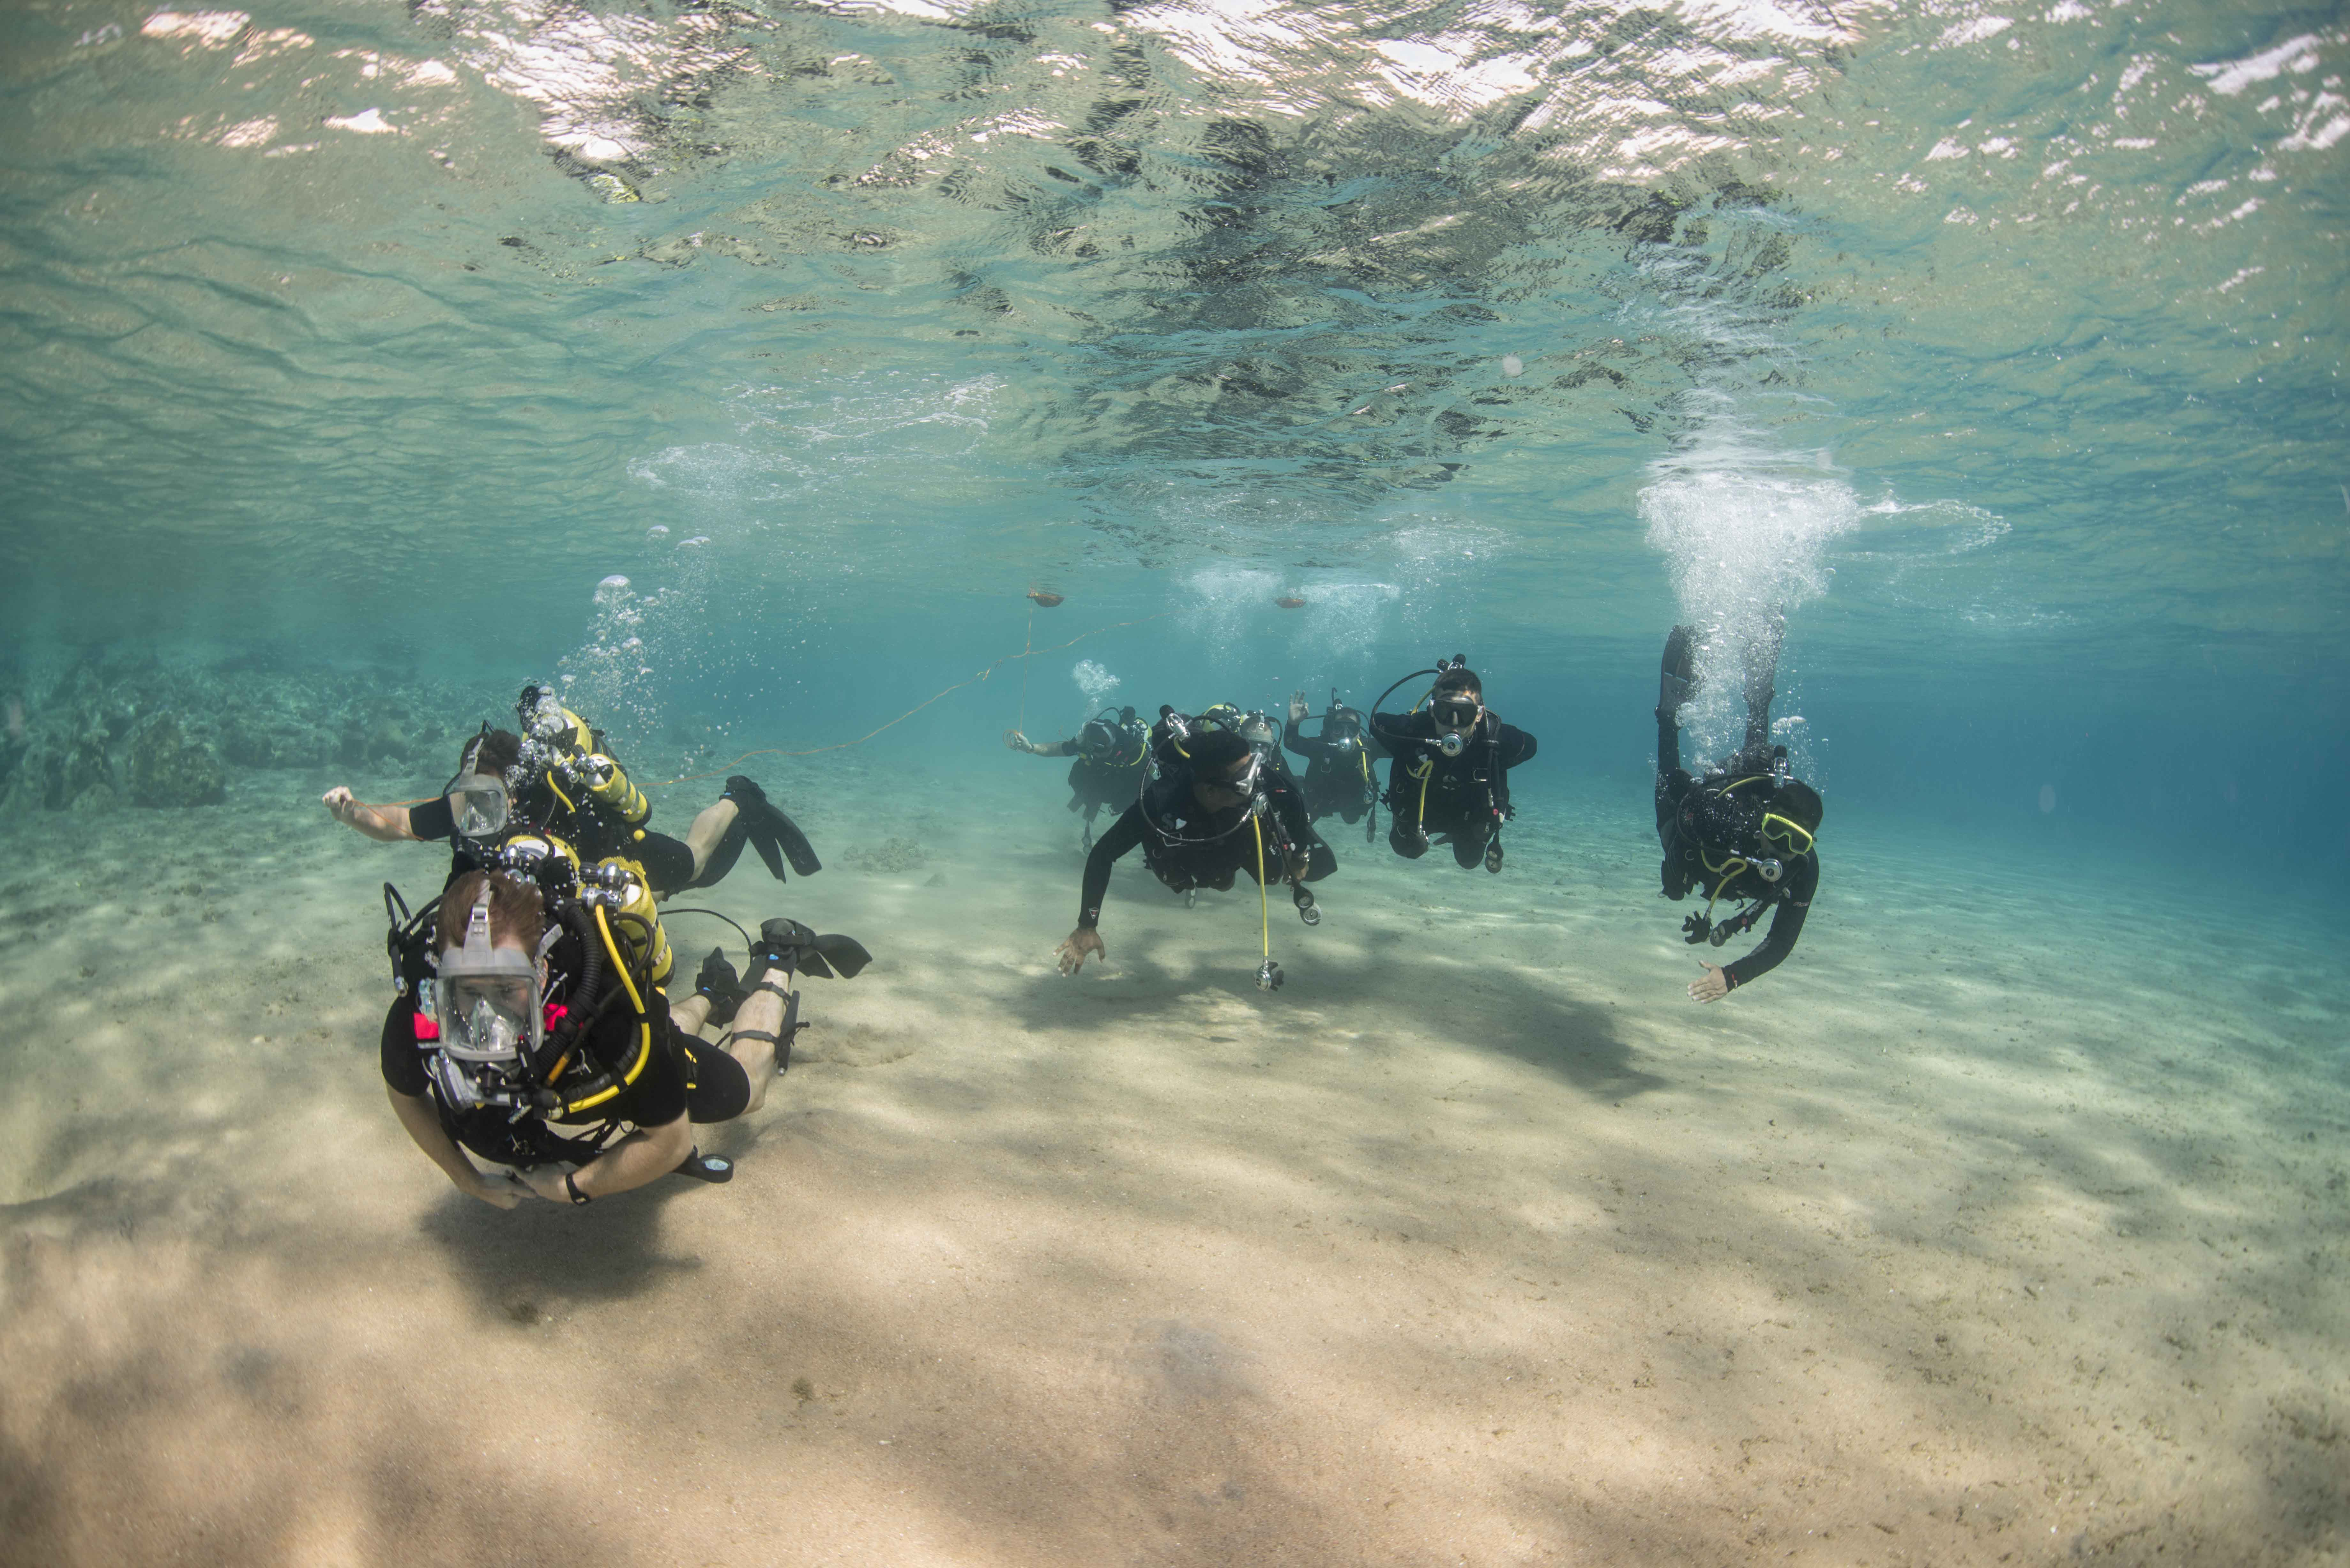 GULF OF AQABA (Oct. 29, 2014) Clearance divers from Fleet Diving Unit 3, assigned to Task Group 523.3, and divers from the Royal Naval Force of Jordan, conduct a search dive while participating in International Mine Countermeasures Exercise (IMCMEX). IMCMEX includes navies from 44 countries whose focus is to promote regional security through mine countermeasure operations in the U.S. 5th Fleet area of responsibility. (U.S. Navy photo by Mass Communication Specialist 3rd Class Daniel Rolston/Released)